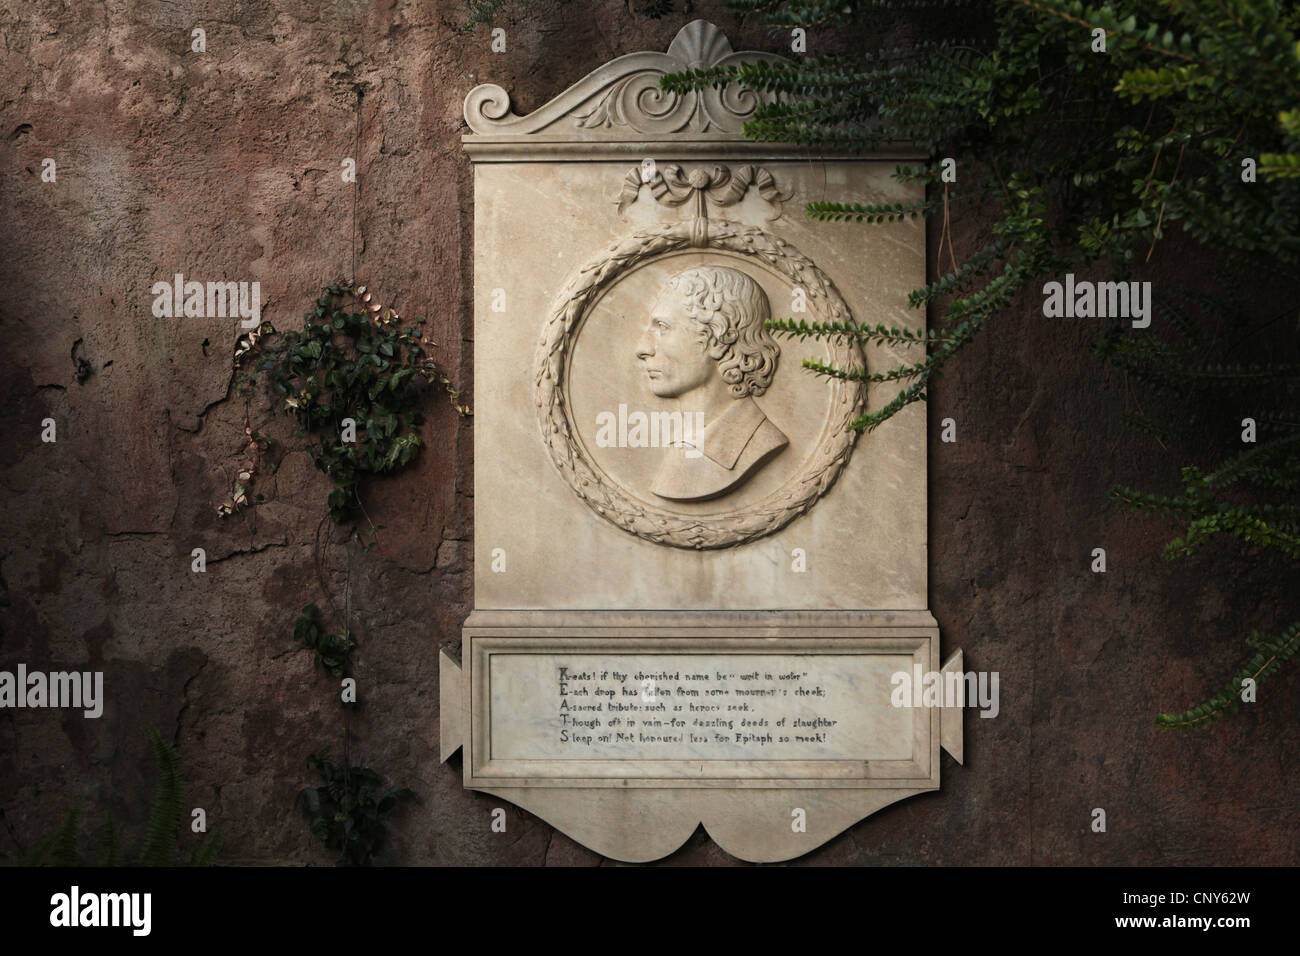 Commemorative plaque to English Romantic poet John Keats beside his grave at the Protestant Cemetery in Rome, Italy. - Stock Image